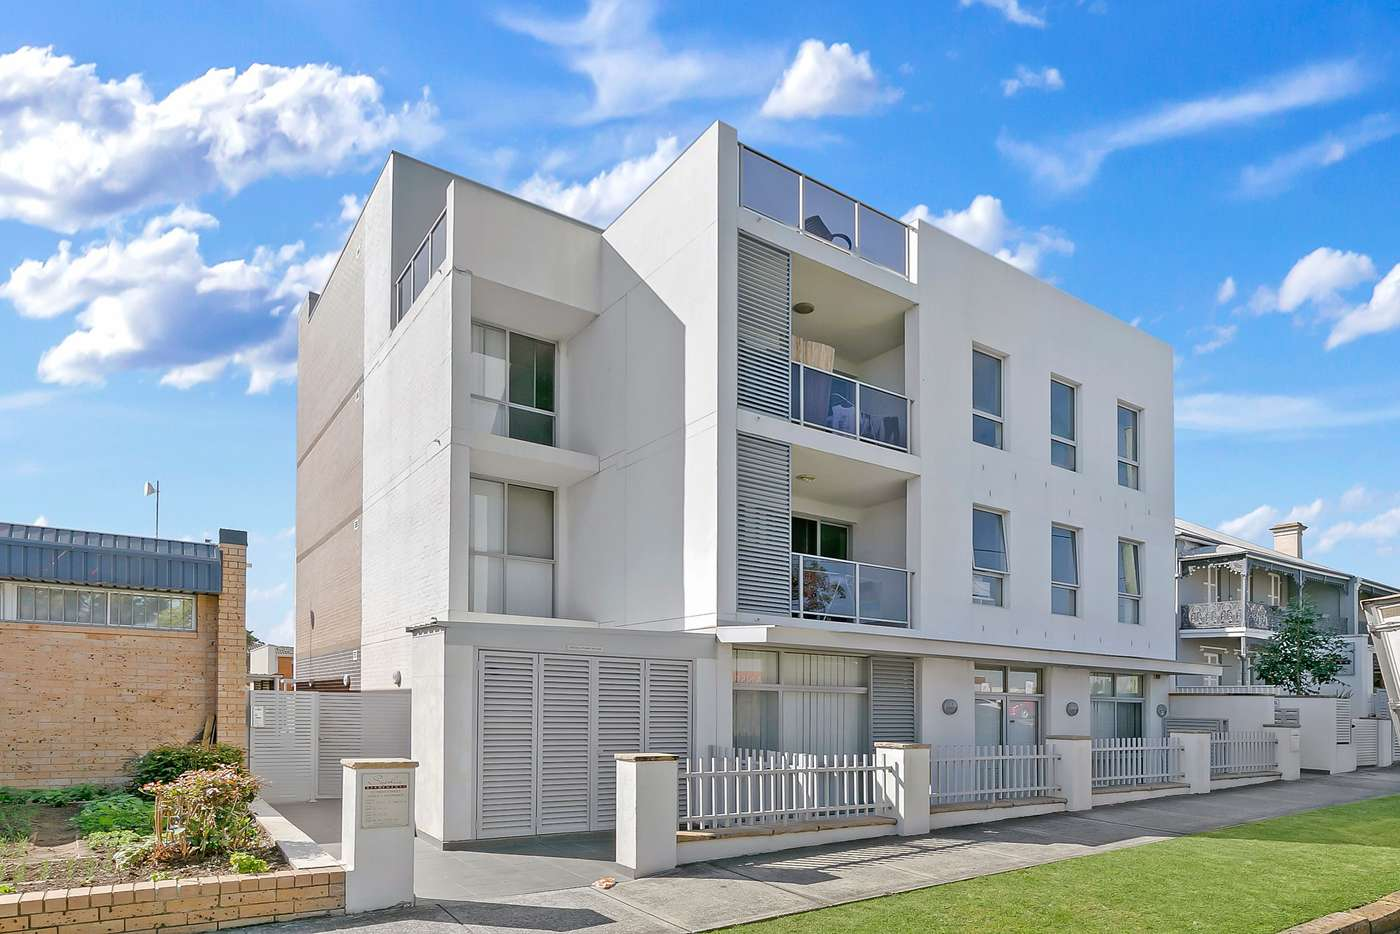 Main view of Homely apartment listing, 12/51A-53 High Street, Parramatta NSW 2150